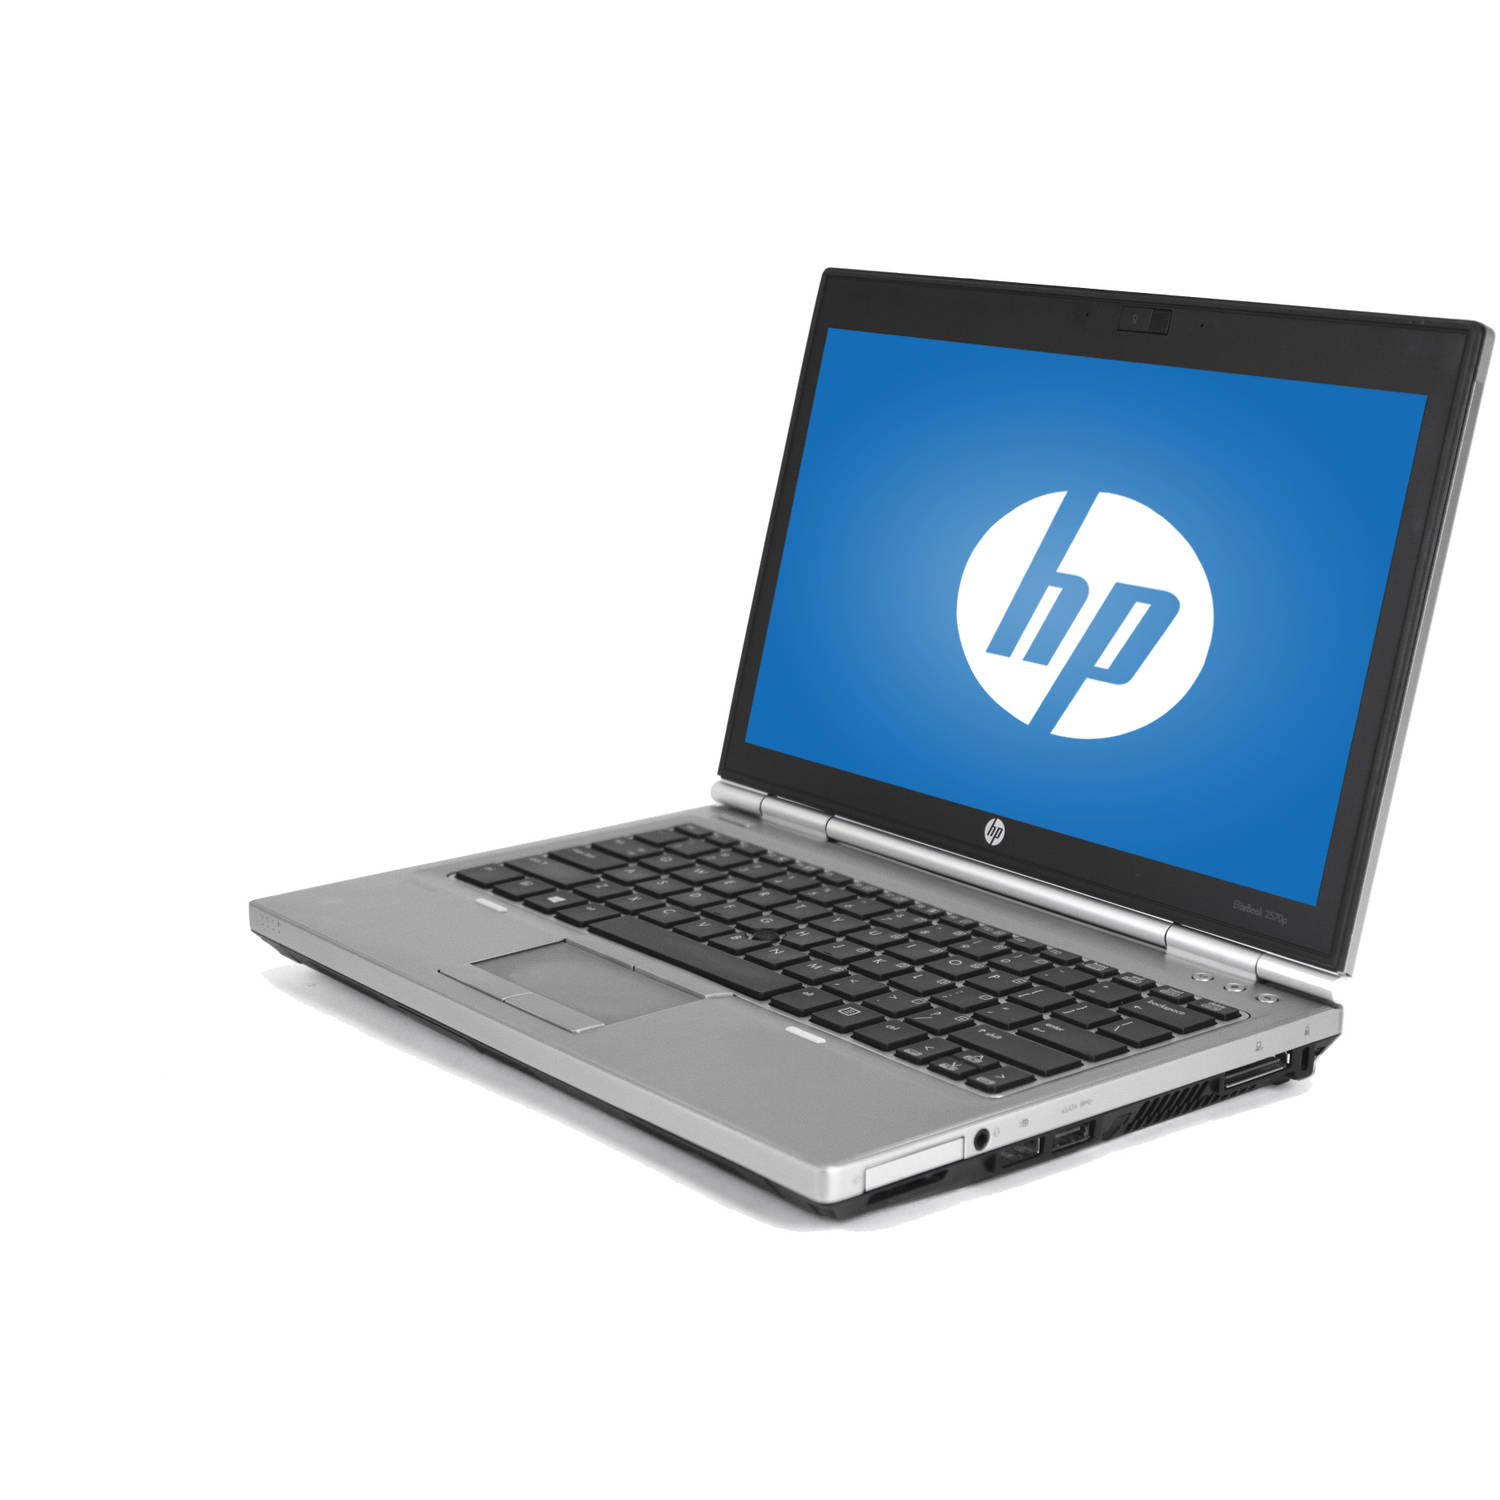 Refurbished HP Silver 12.5 EliteBook 2570P WA5 - 1121 Laptop PC with Intel Core i5 - 3210M Processor, 4GB Memory, 320GB Hard Drive and Windows 10 Home